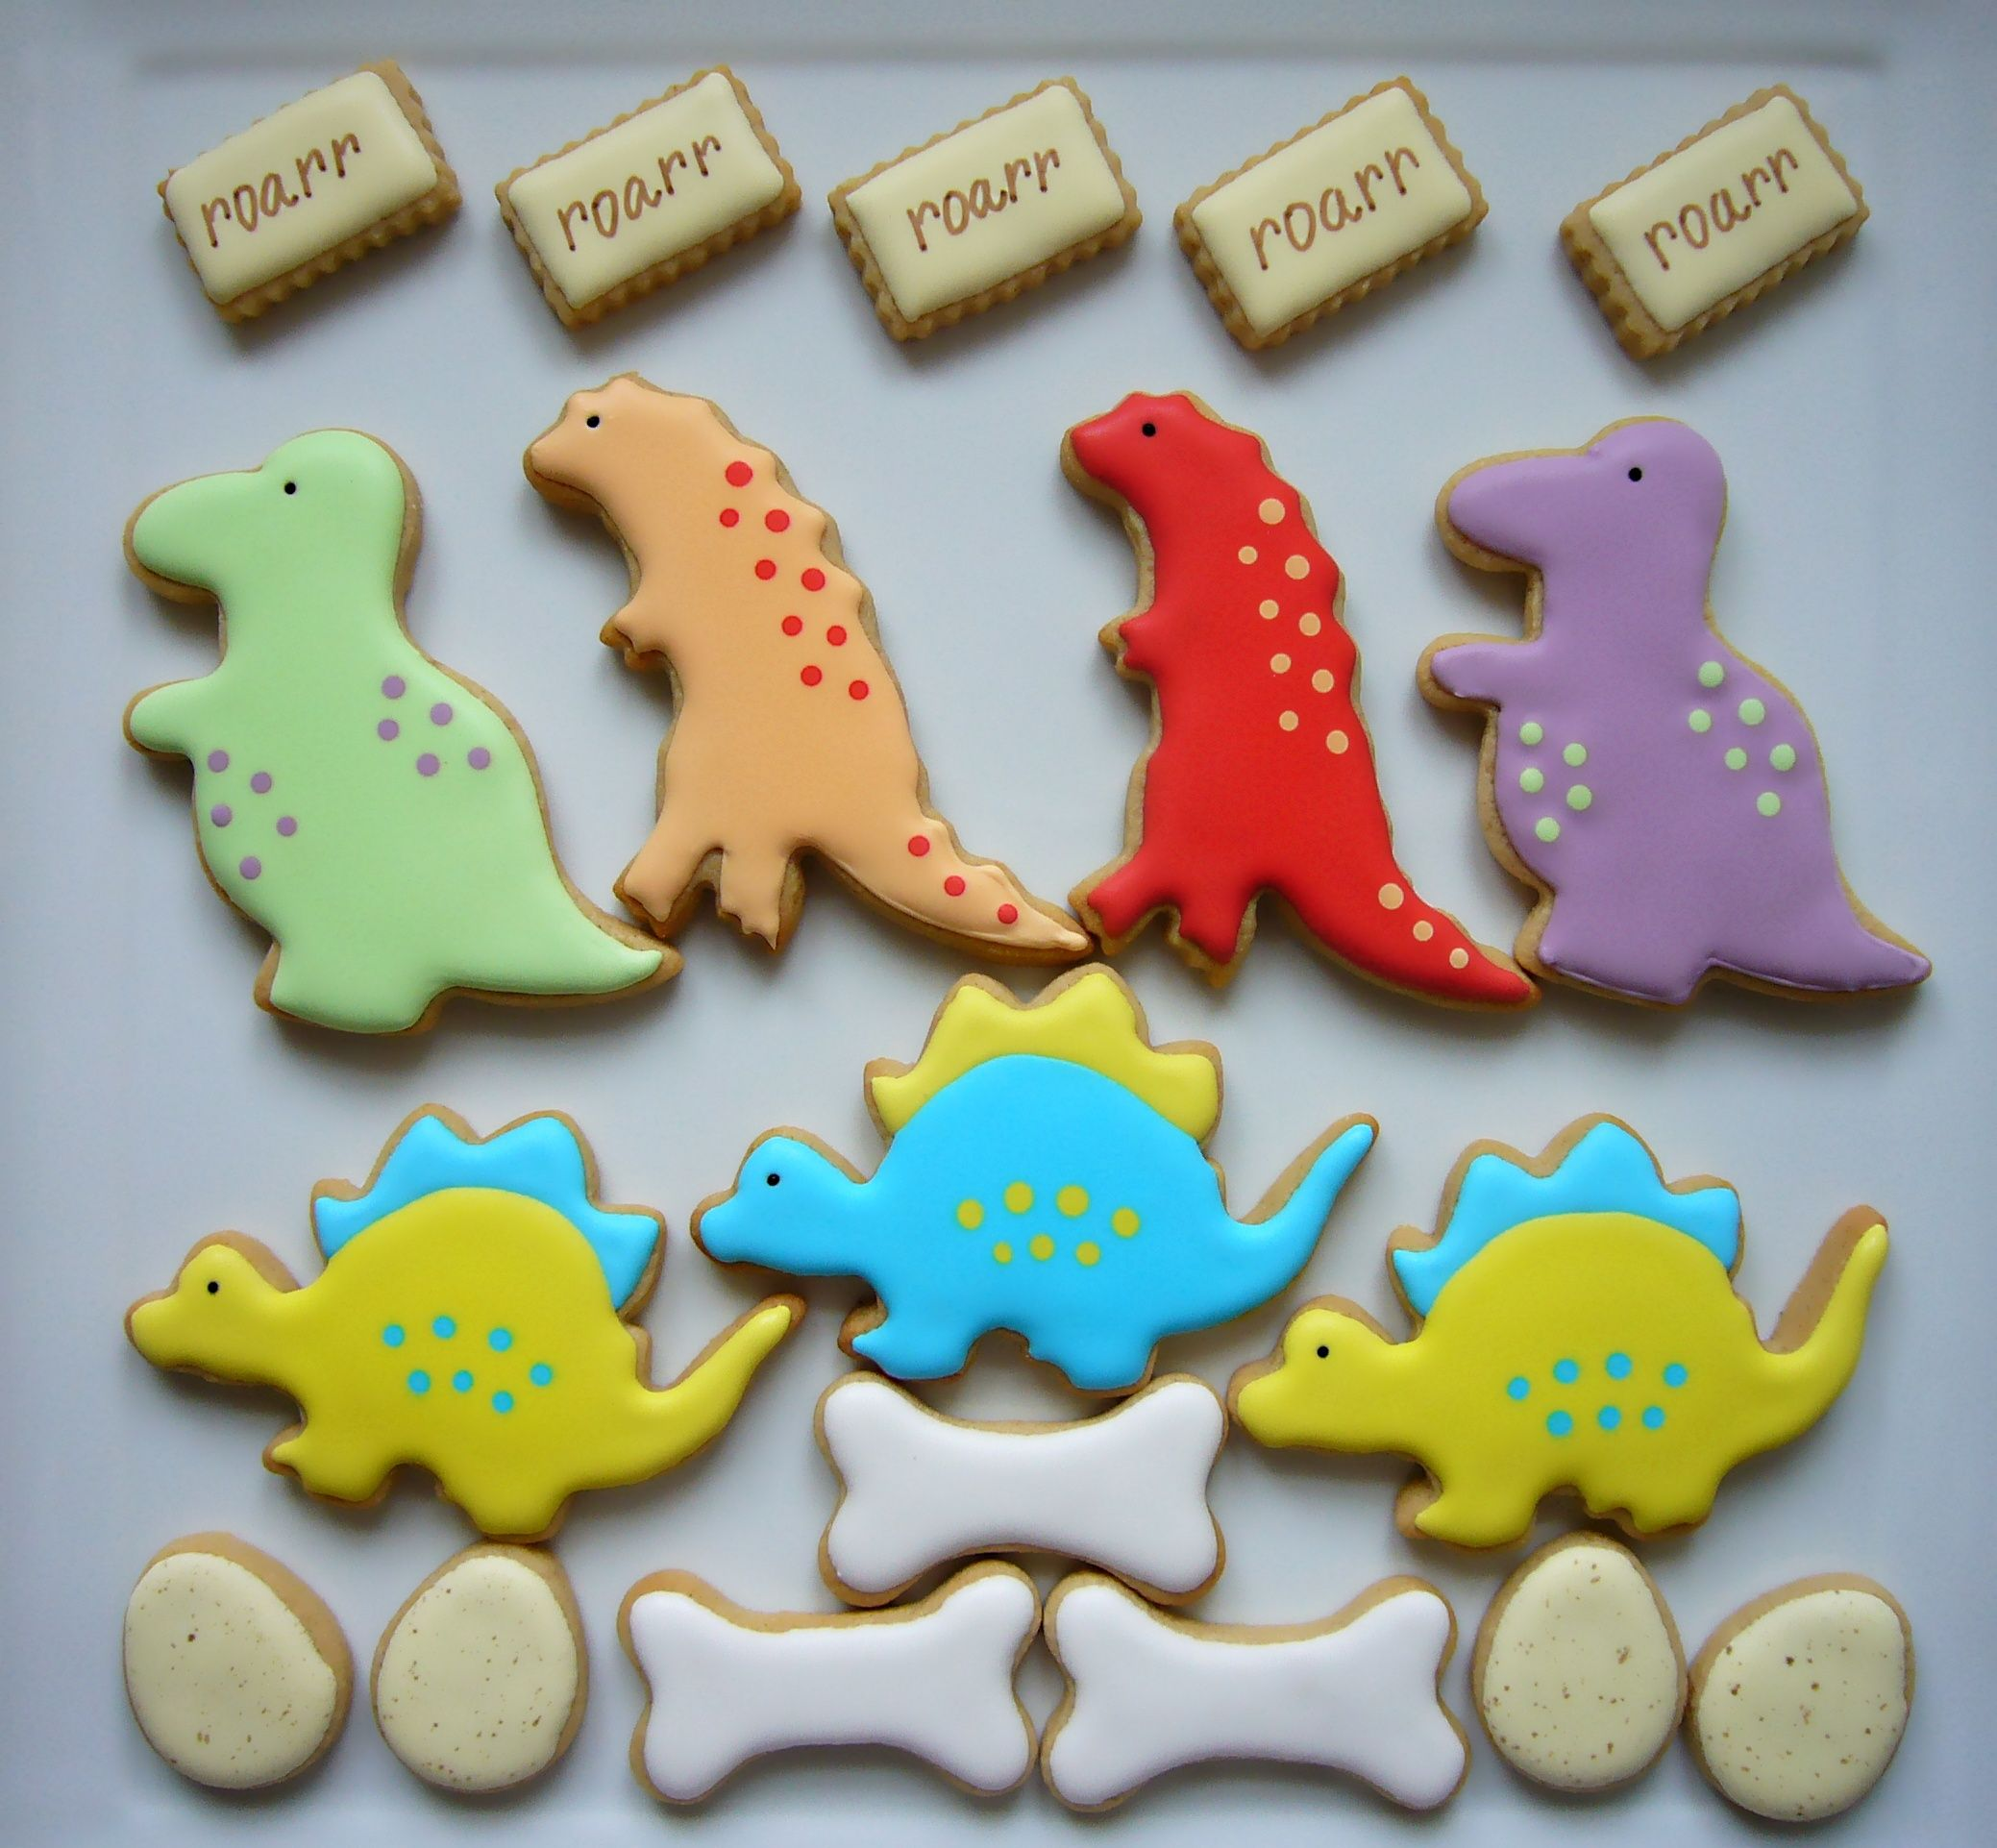 Cookie decorating party ideas - Dinosaur Cookies Decorated With Royal Icing